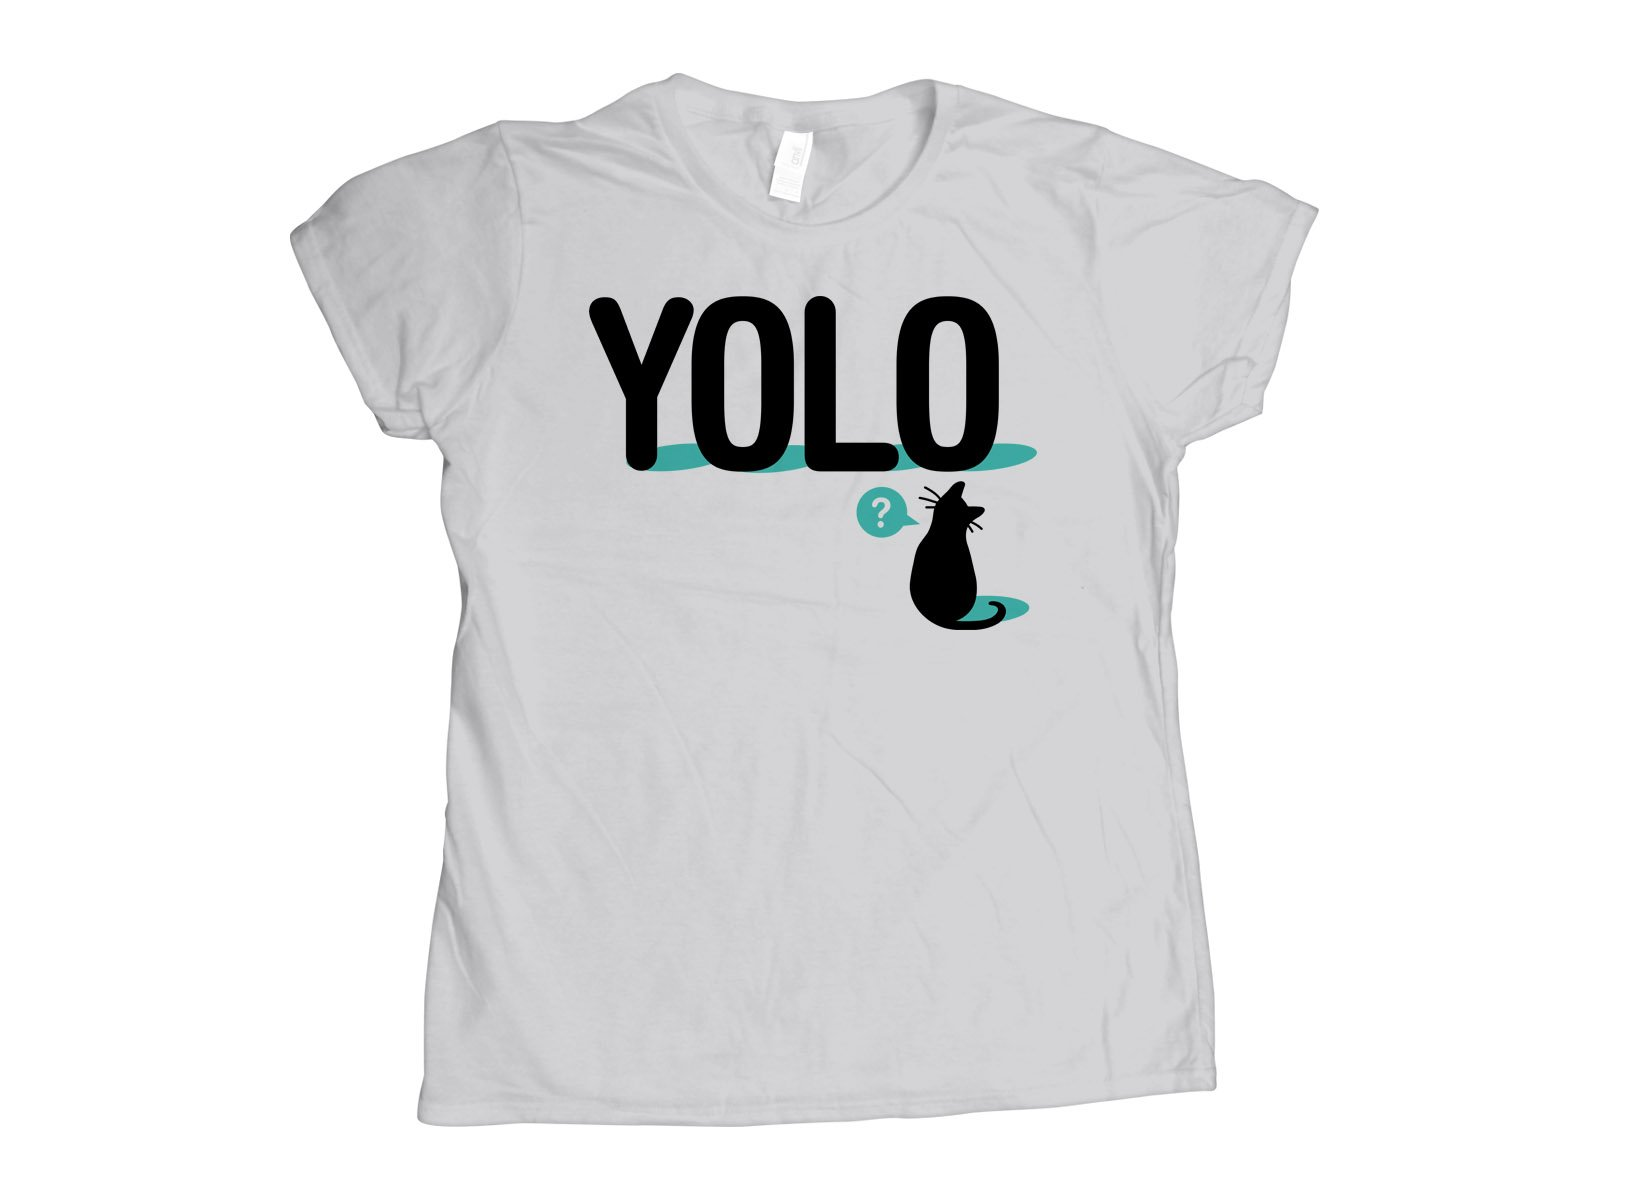 YOLO Cat on Womens T-Shirt